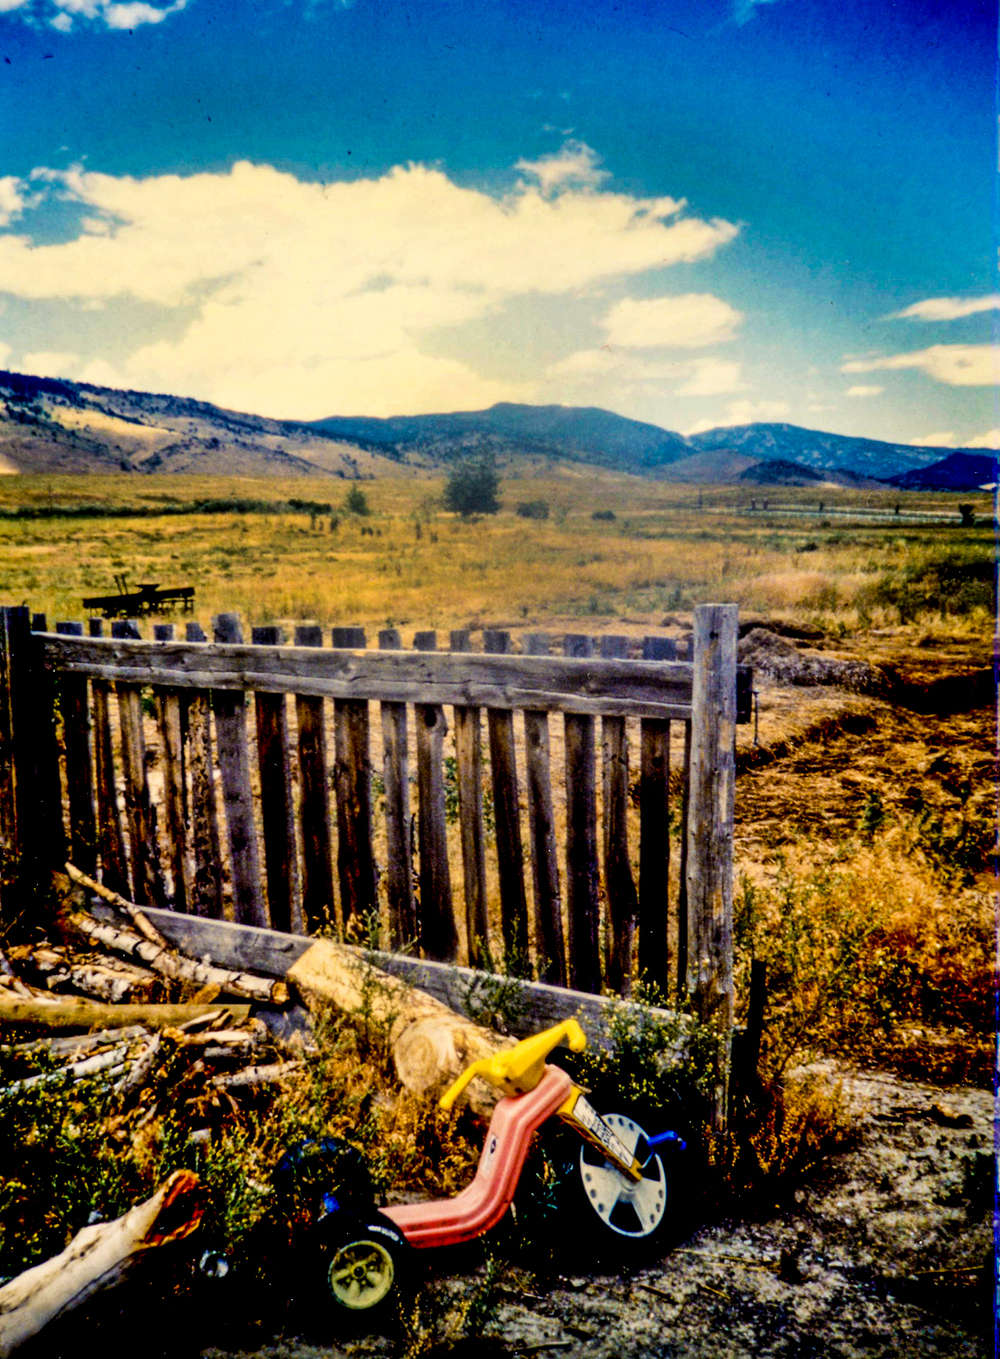 Boulder Valley Ranch - July 4, 1986